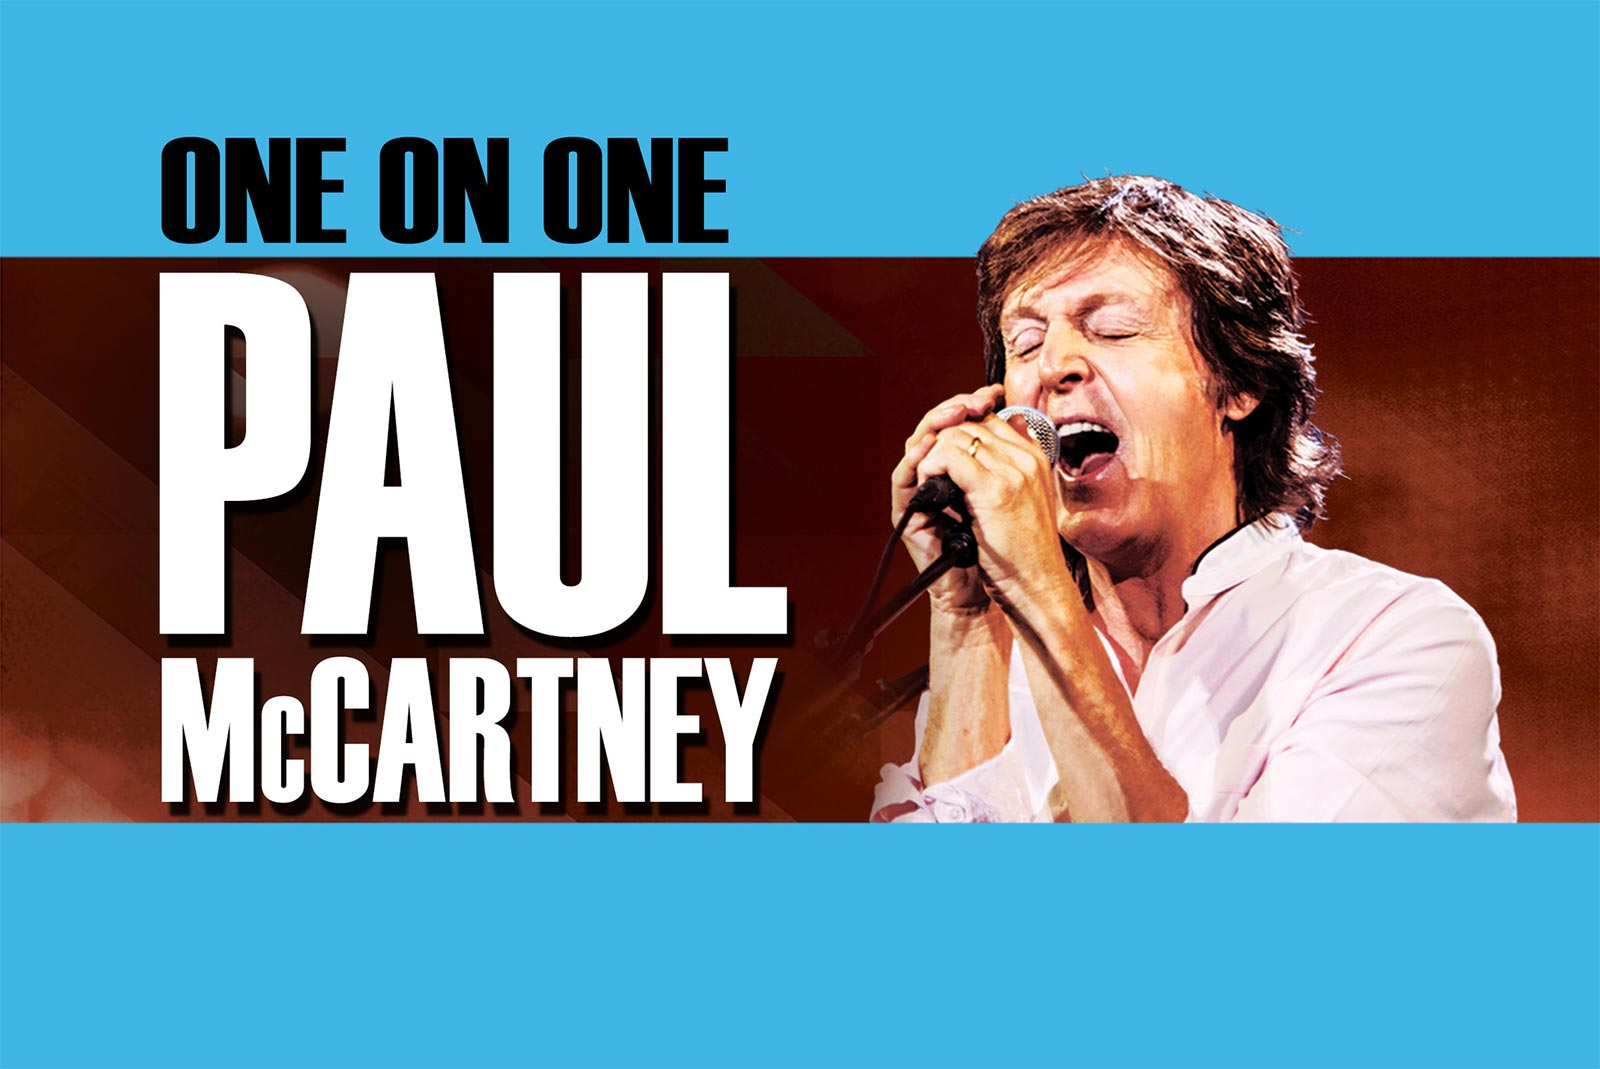 Paul Mccartney  One On One  Radiomotelcom. Ways To Move Across Country Best File Copy. Storage Units Cape Coral On Christian Liberty. Liberty Home Protection Cfp Financial Planning. Mortgage Rates 15 Year Fixed Today. Credit Card With 0 Interest On Balance Transfers. Botox Lips Before And After Greater New York. Banks In San Luis Obispo A Plus Moving Boston. Chicago State University Tuition